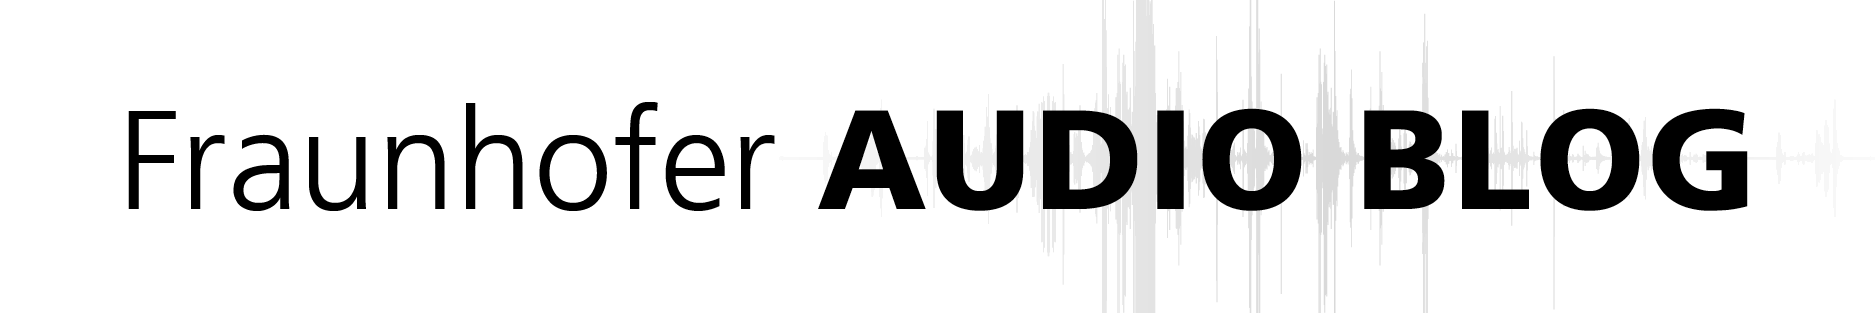 Fraunhofer Audio Blog